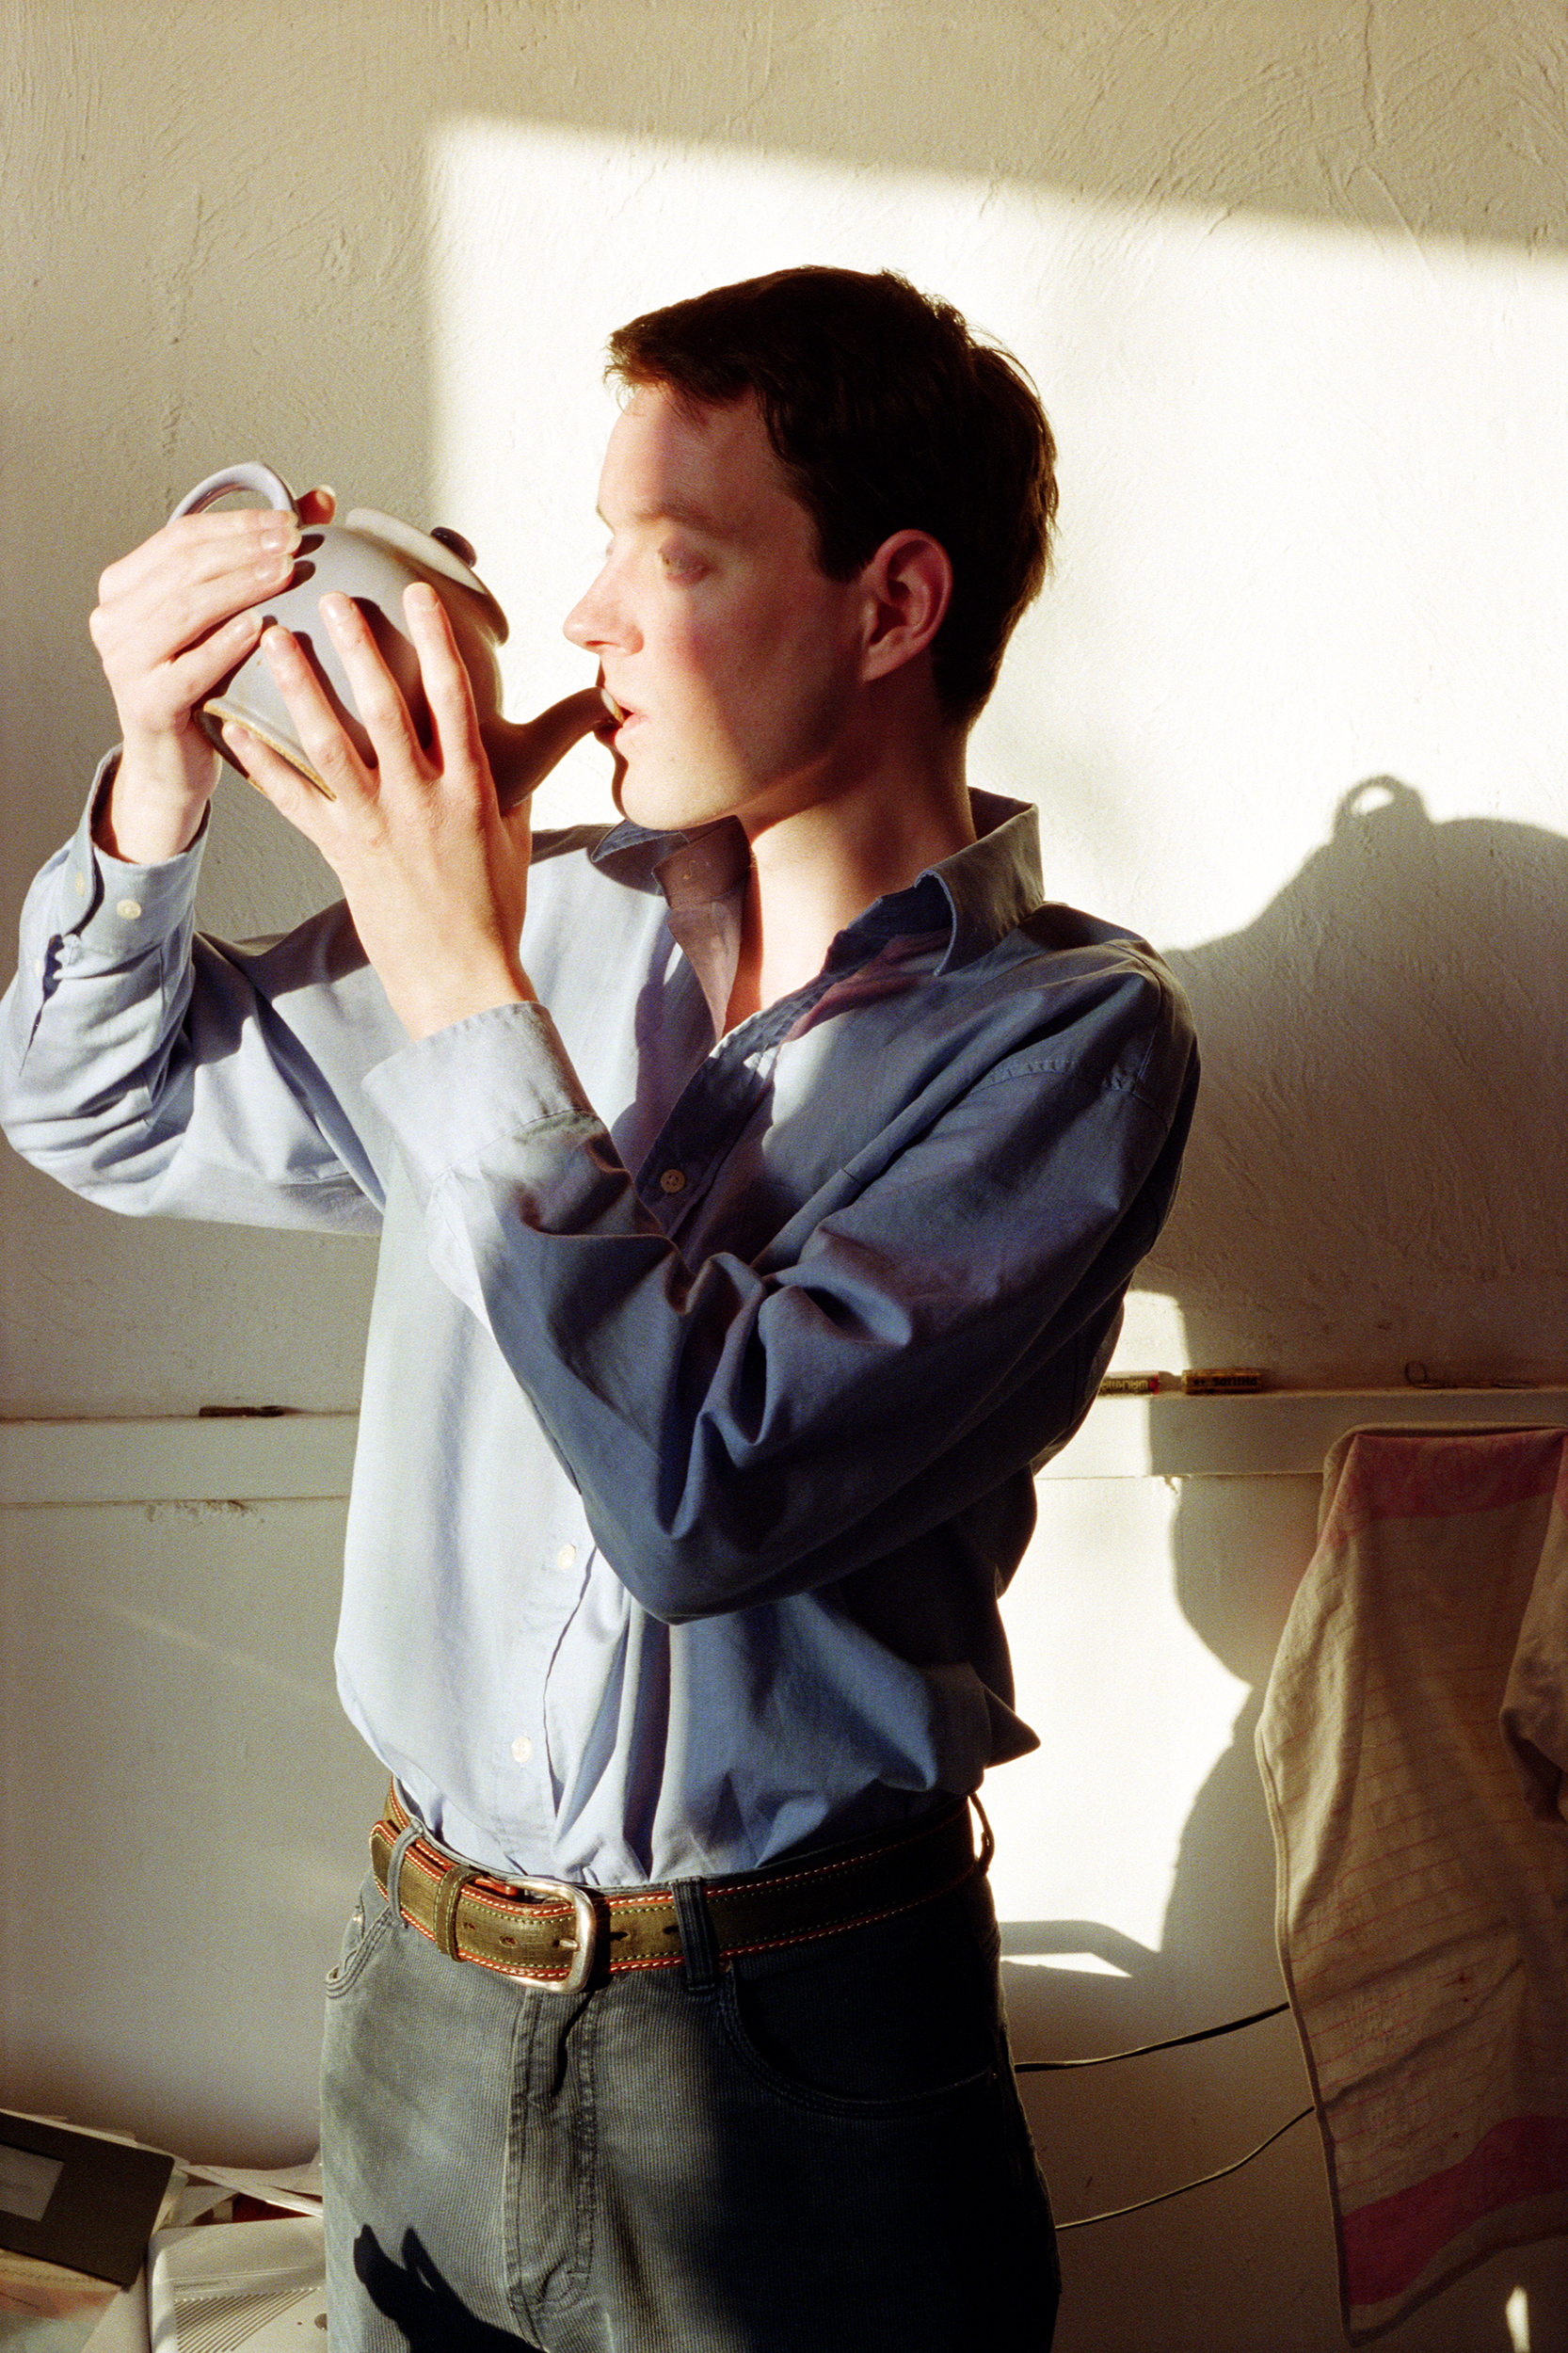 Self-portrait with Teapot, photograph by Wouter van Riessen